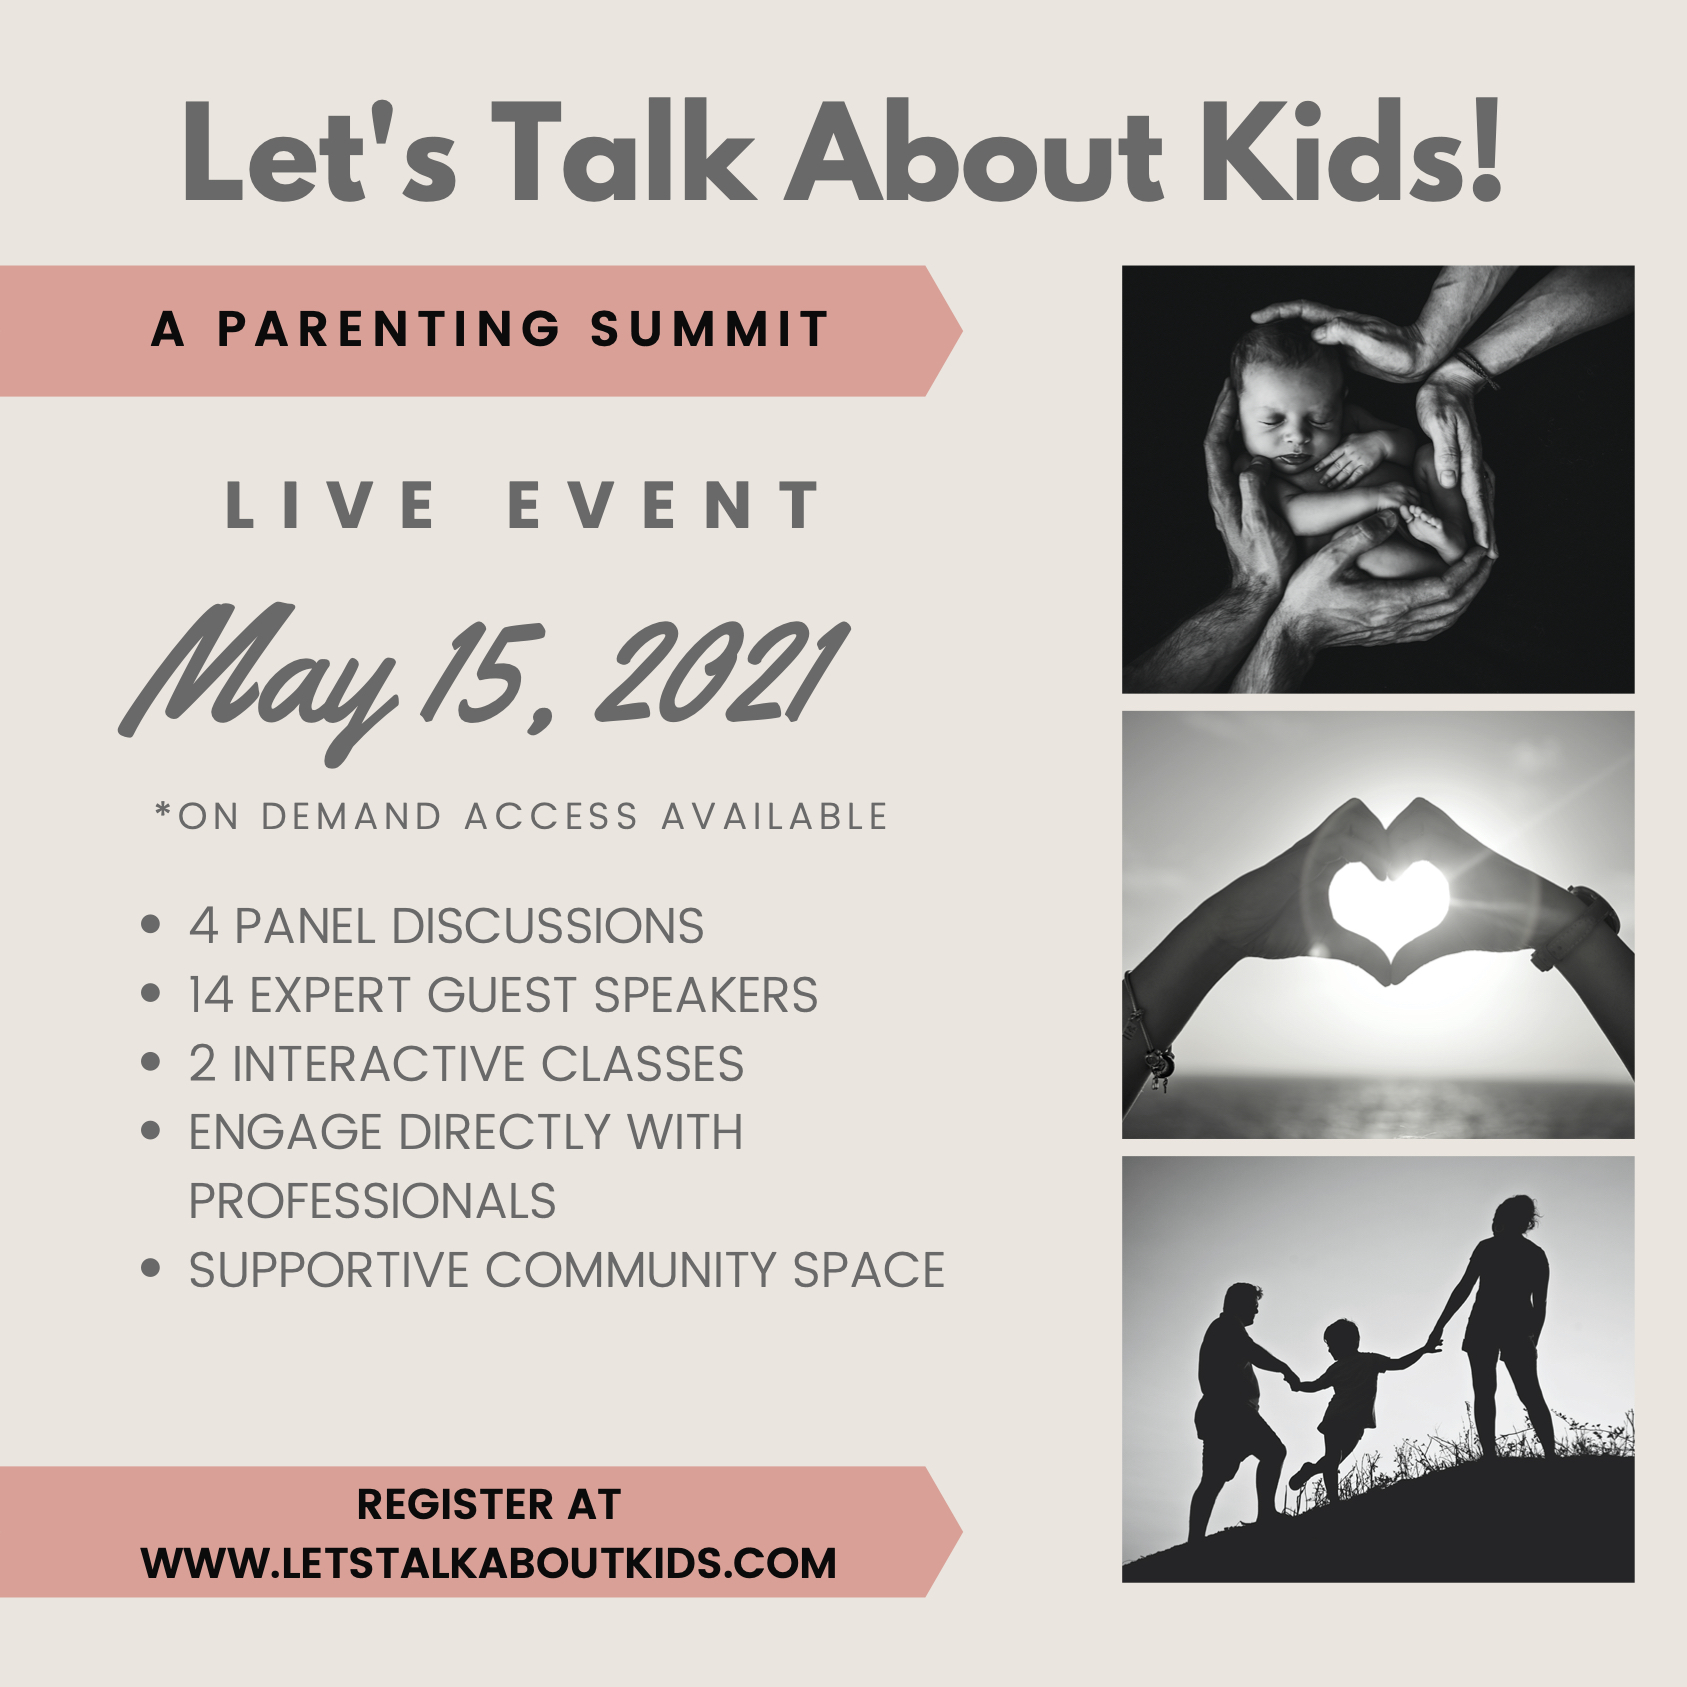 Let's Talk About Kids! A Parenting Summit at Let's Talk About Kids